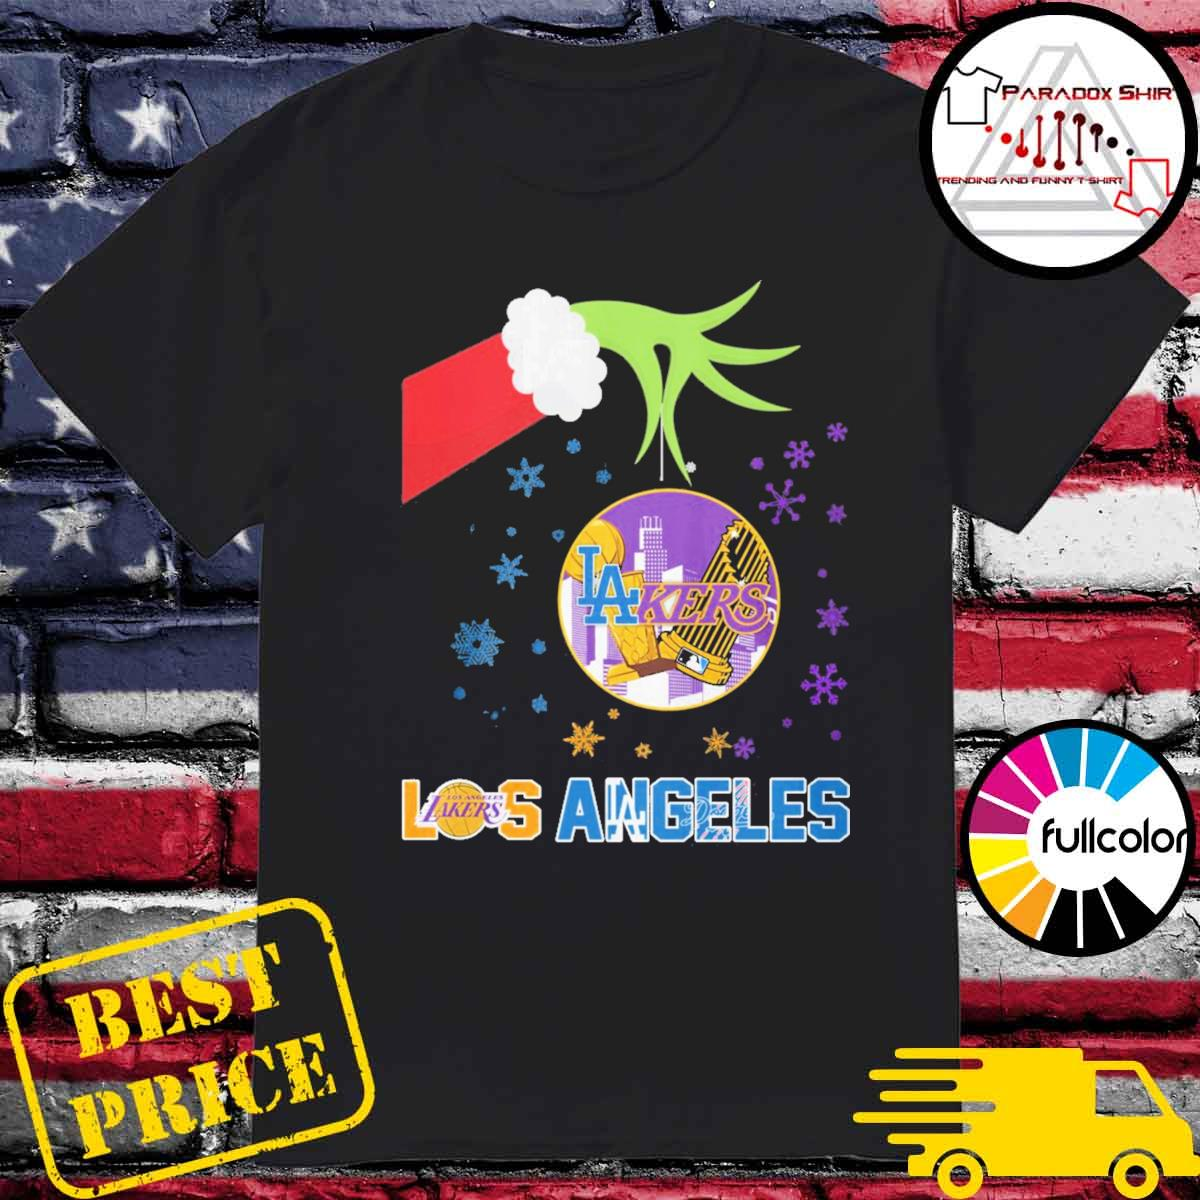 Santa Grinch hand hold Los Angeles Lakers and Dodgers opponent shirt